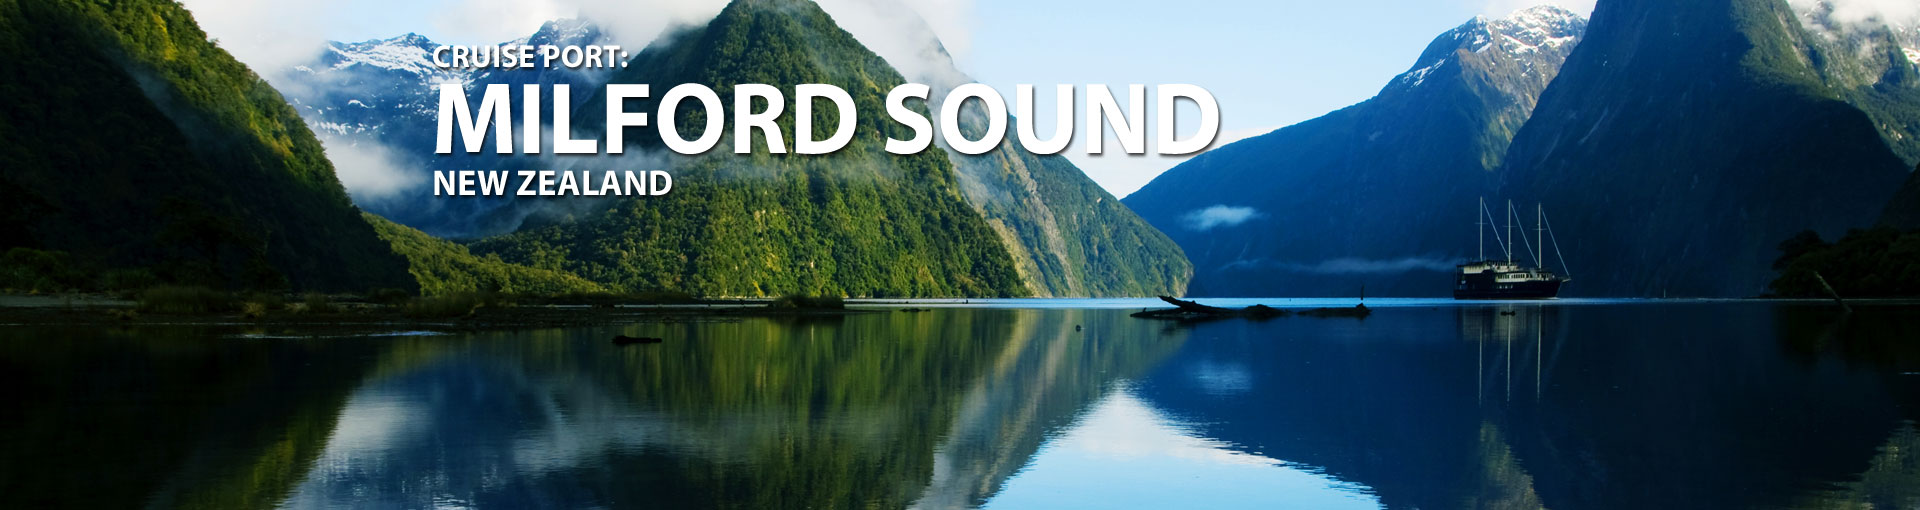 Cruises to Milford Sound, New Zealand